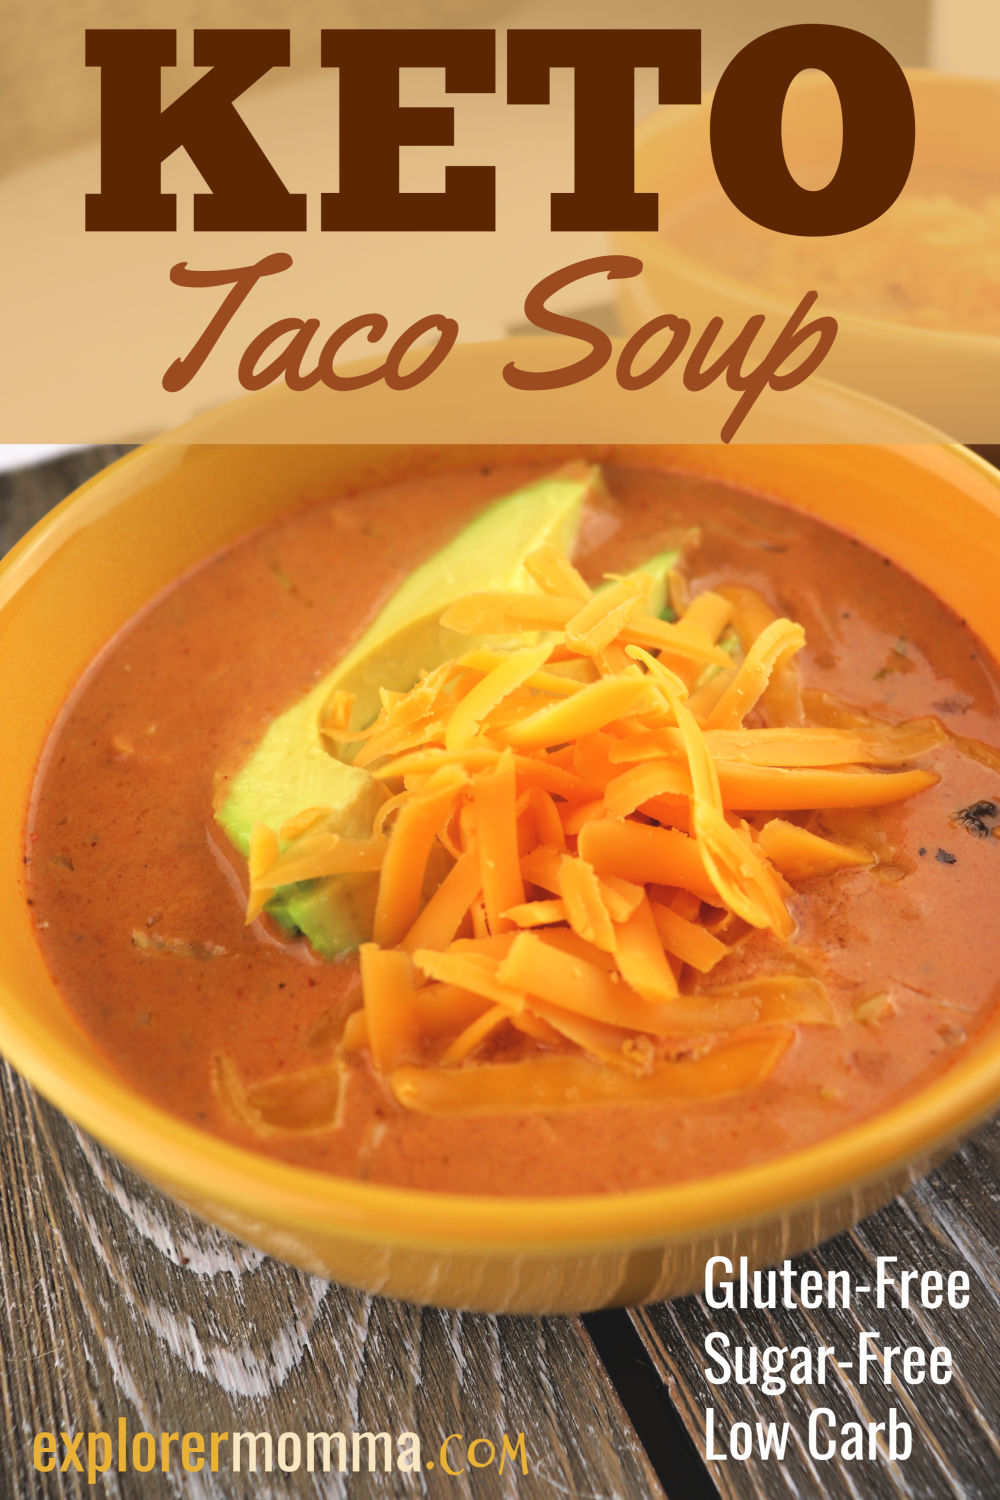 An easy weeknight meal! Keto taco soup is the perfect low carb recipe for an easy family dinner. Gluten-free, a great recipe for your keto diet and ketogenic lifestyle. #ketodinners #lowcarbsoups